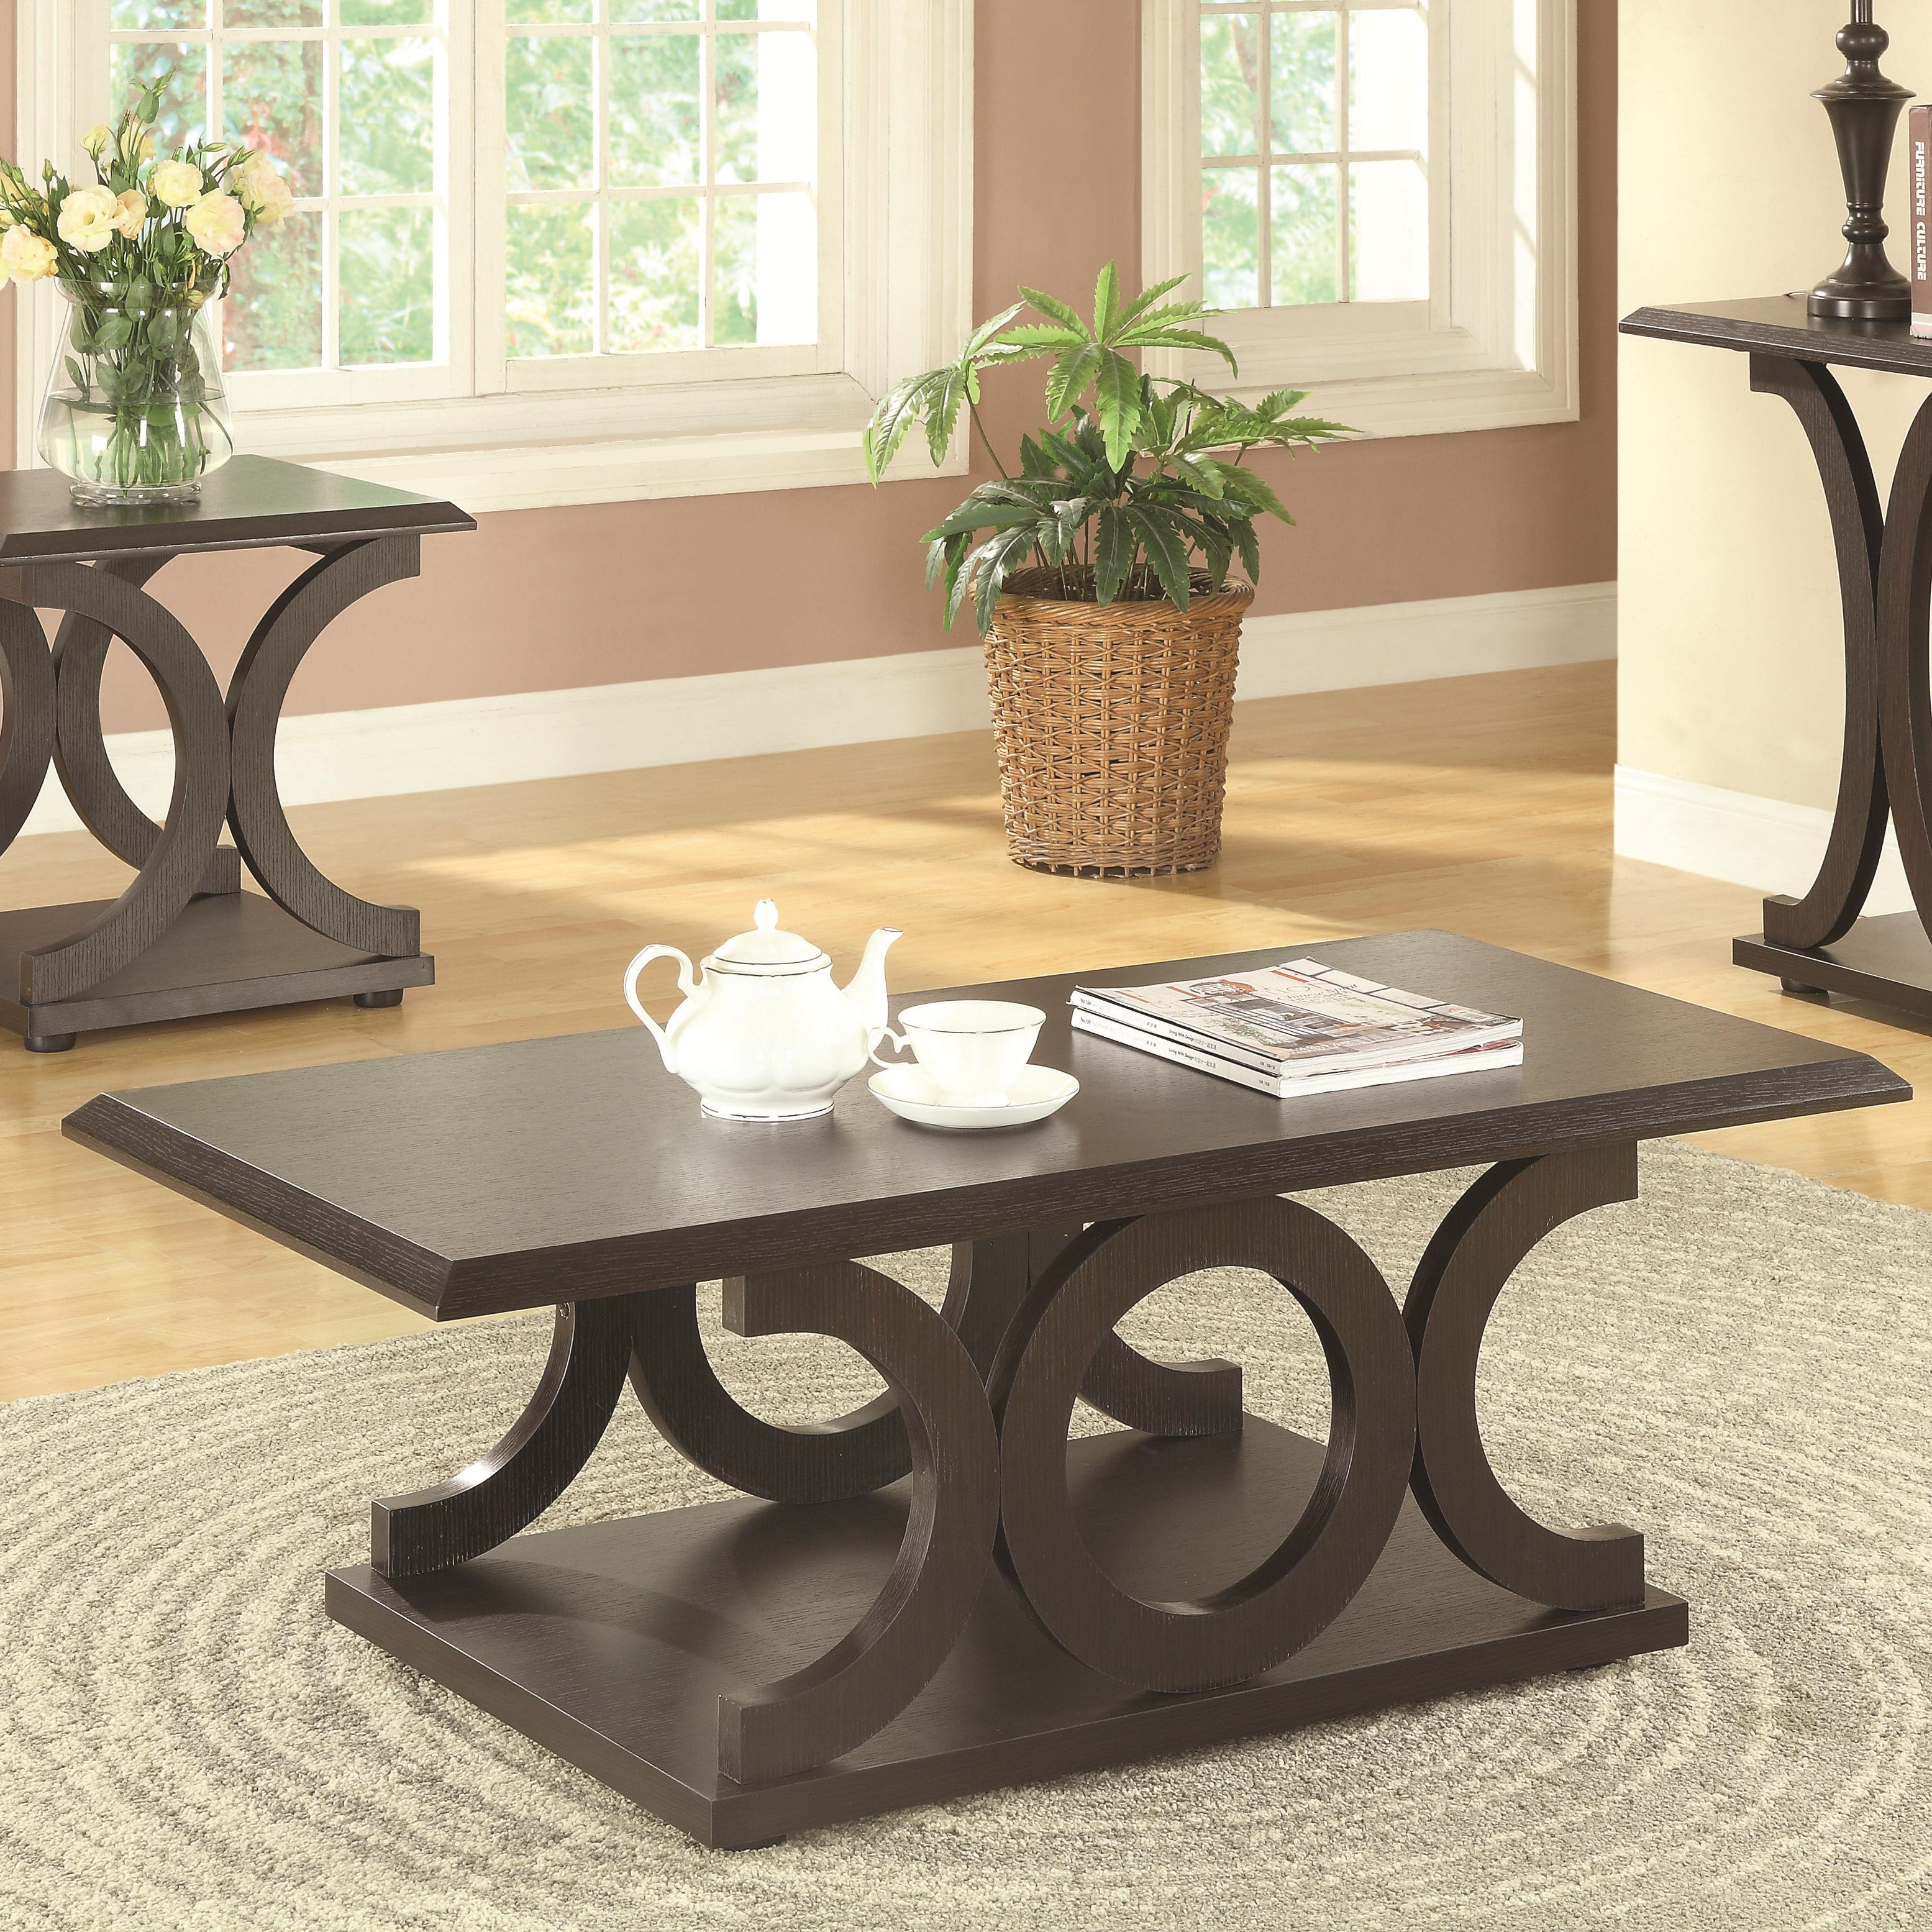 703140 Coffee Table by Coaster at Value City Furniture